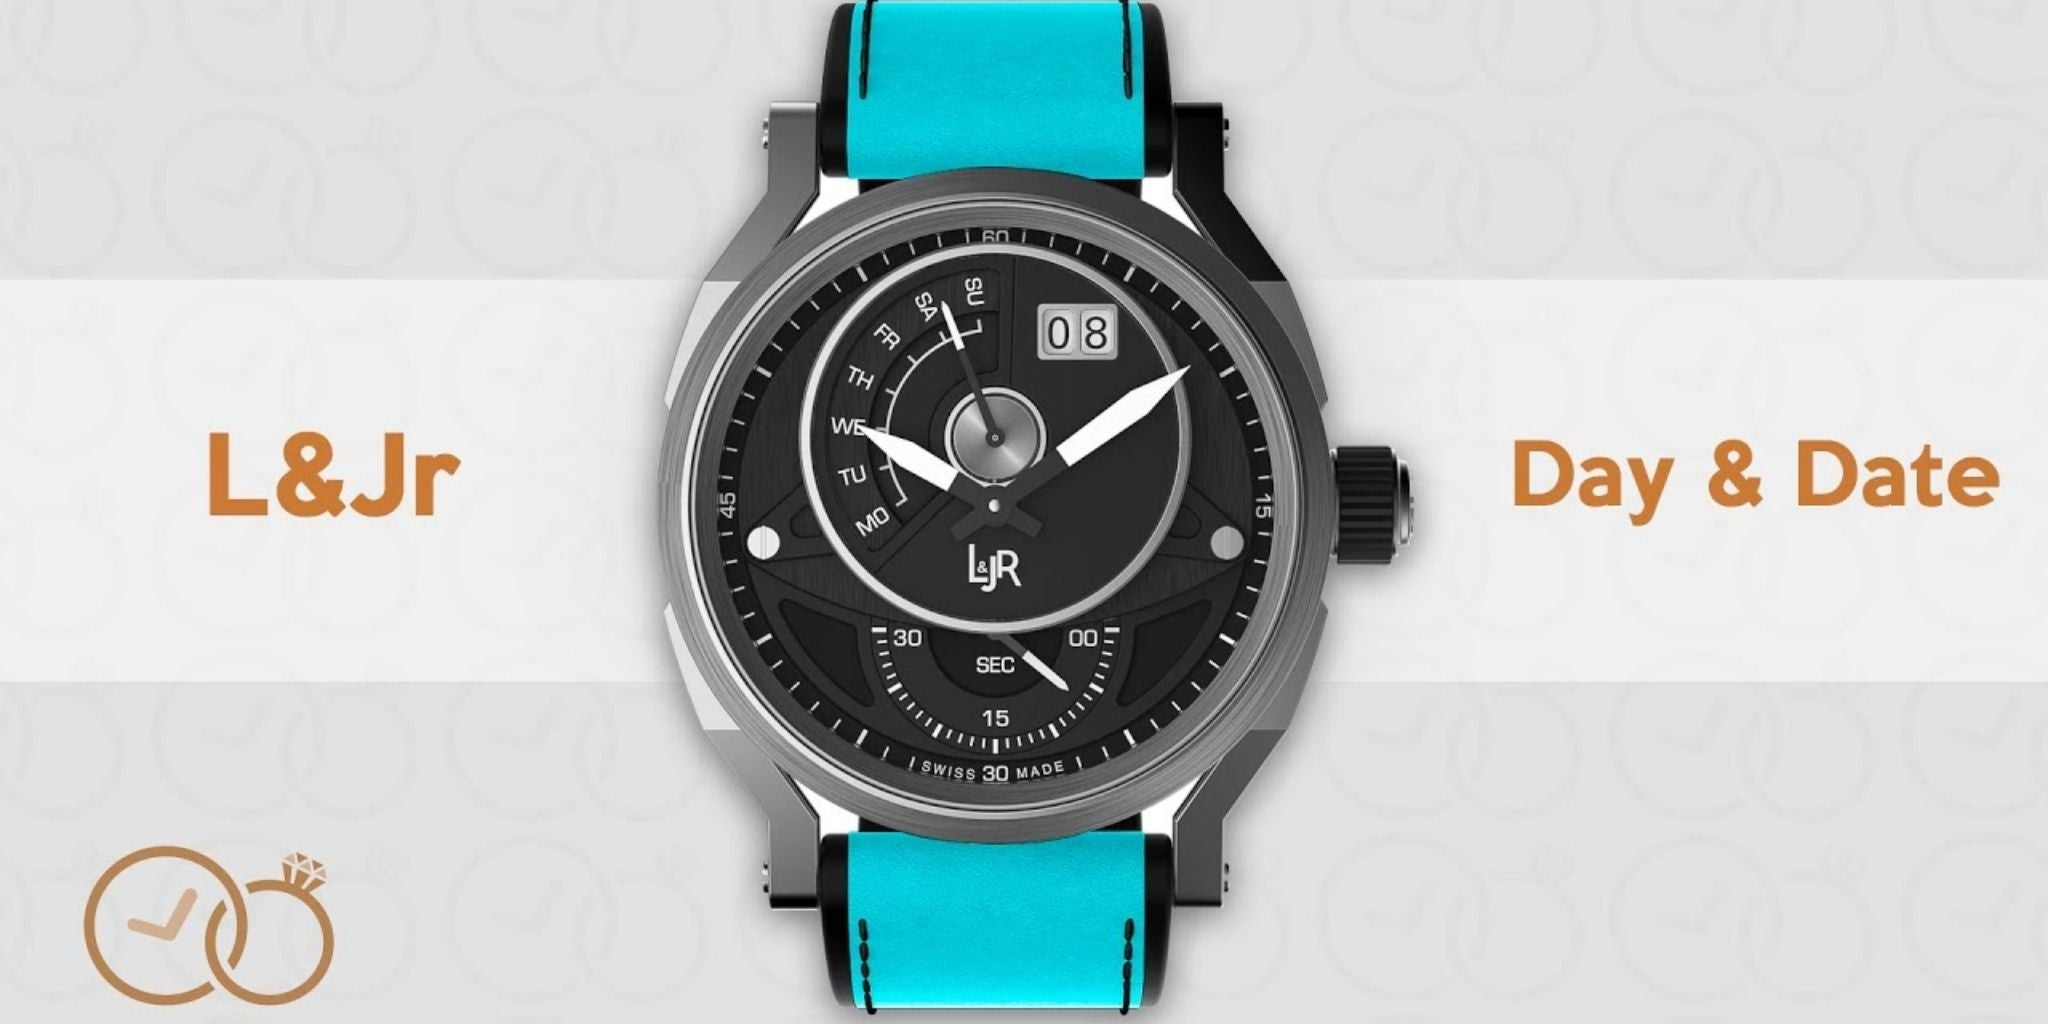 L&Jr Day and Date Black PVD Blue